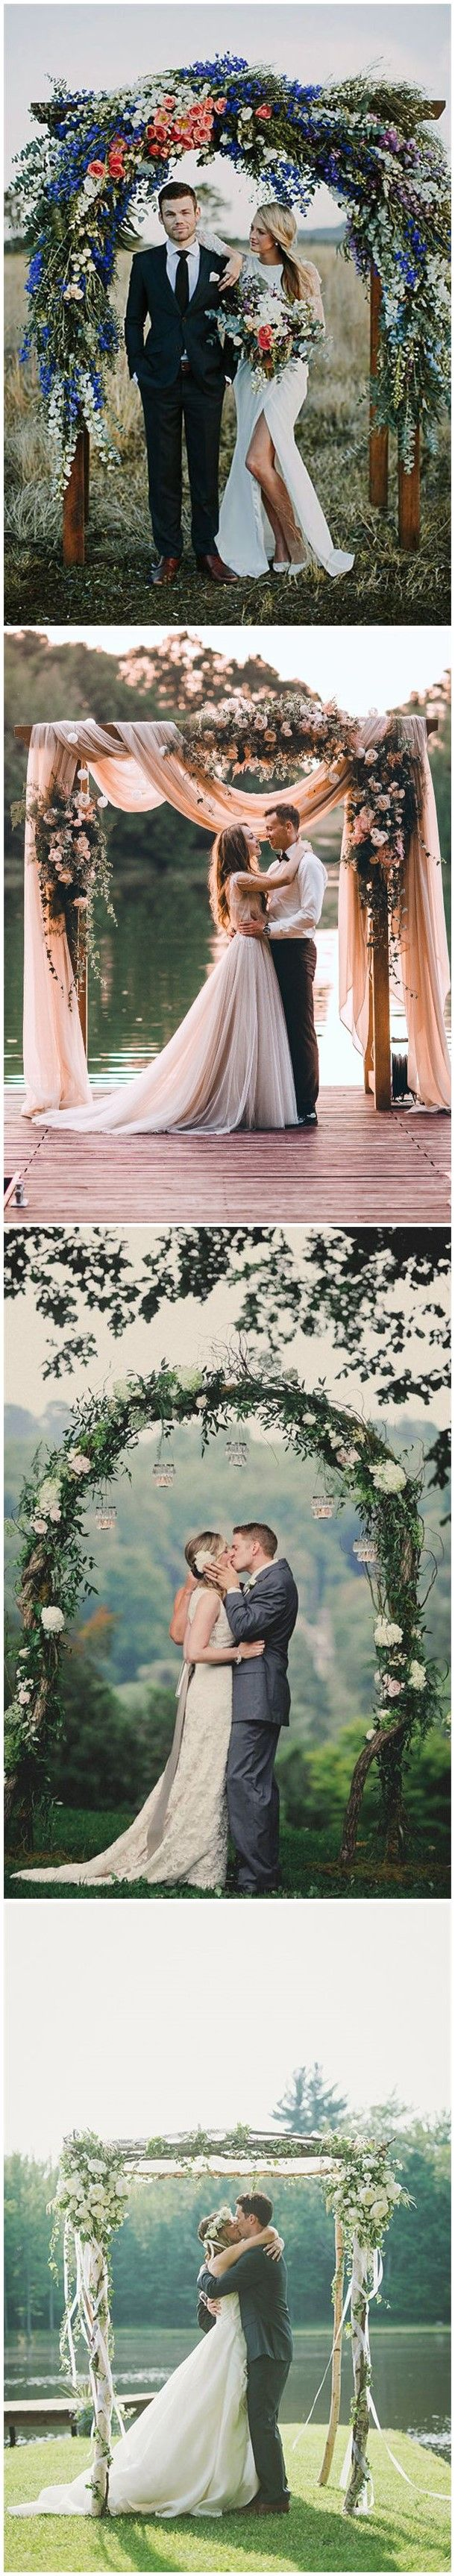 25 best wedding arches ideas on pinterest floral arch for Arch wedding decoration ideas